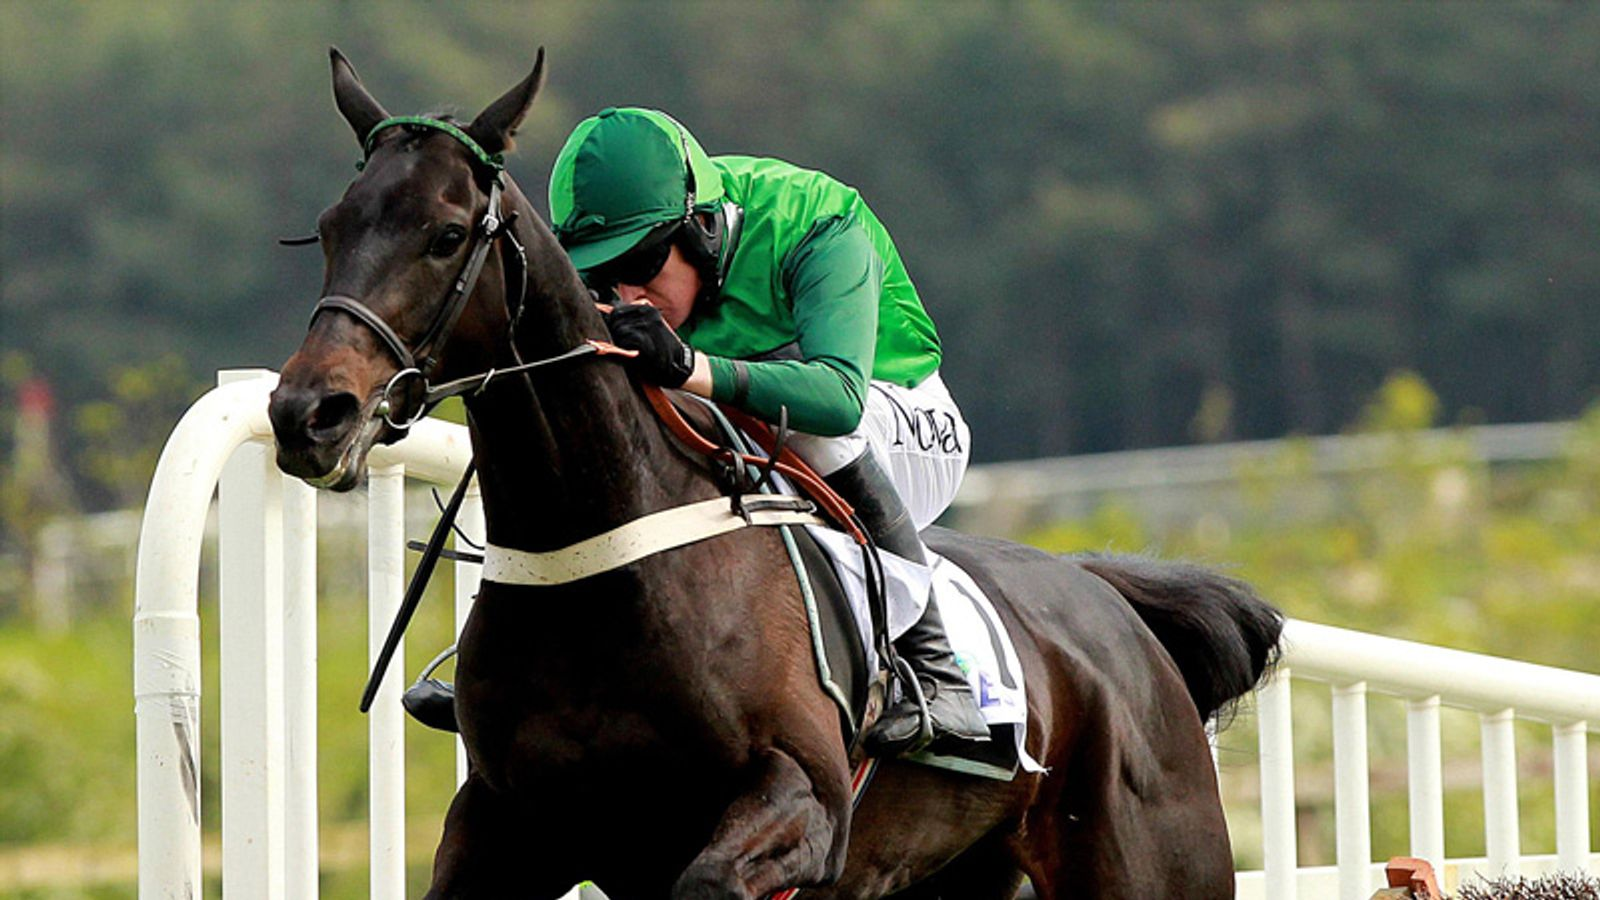 Grandouet champion hurdle betting cricket betting in india legality